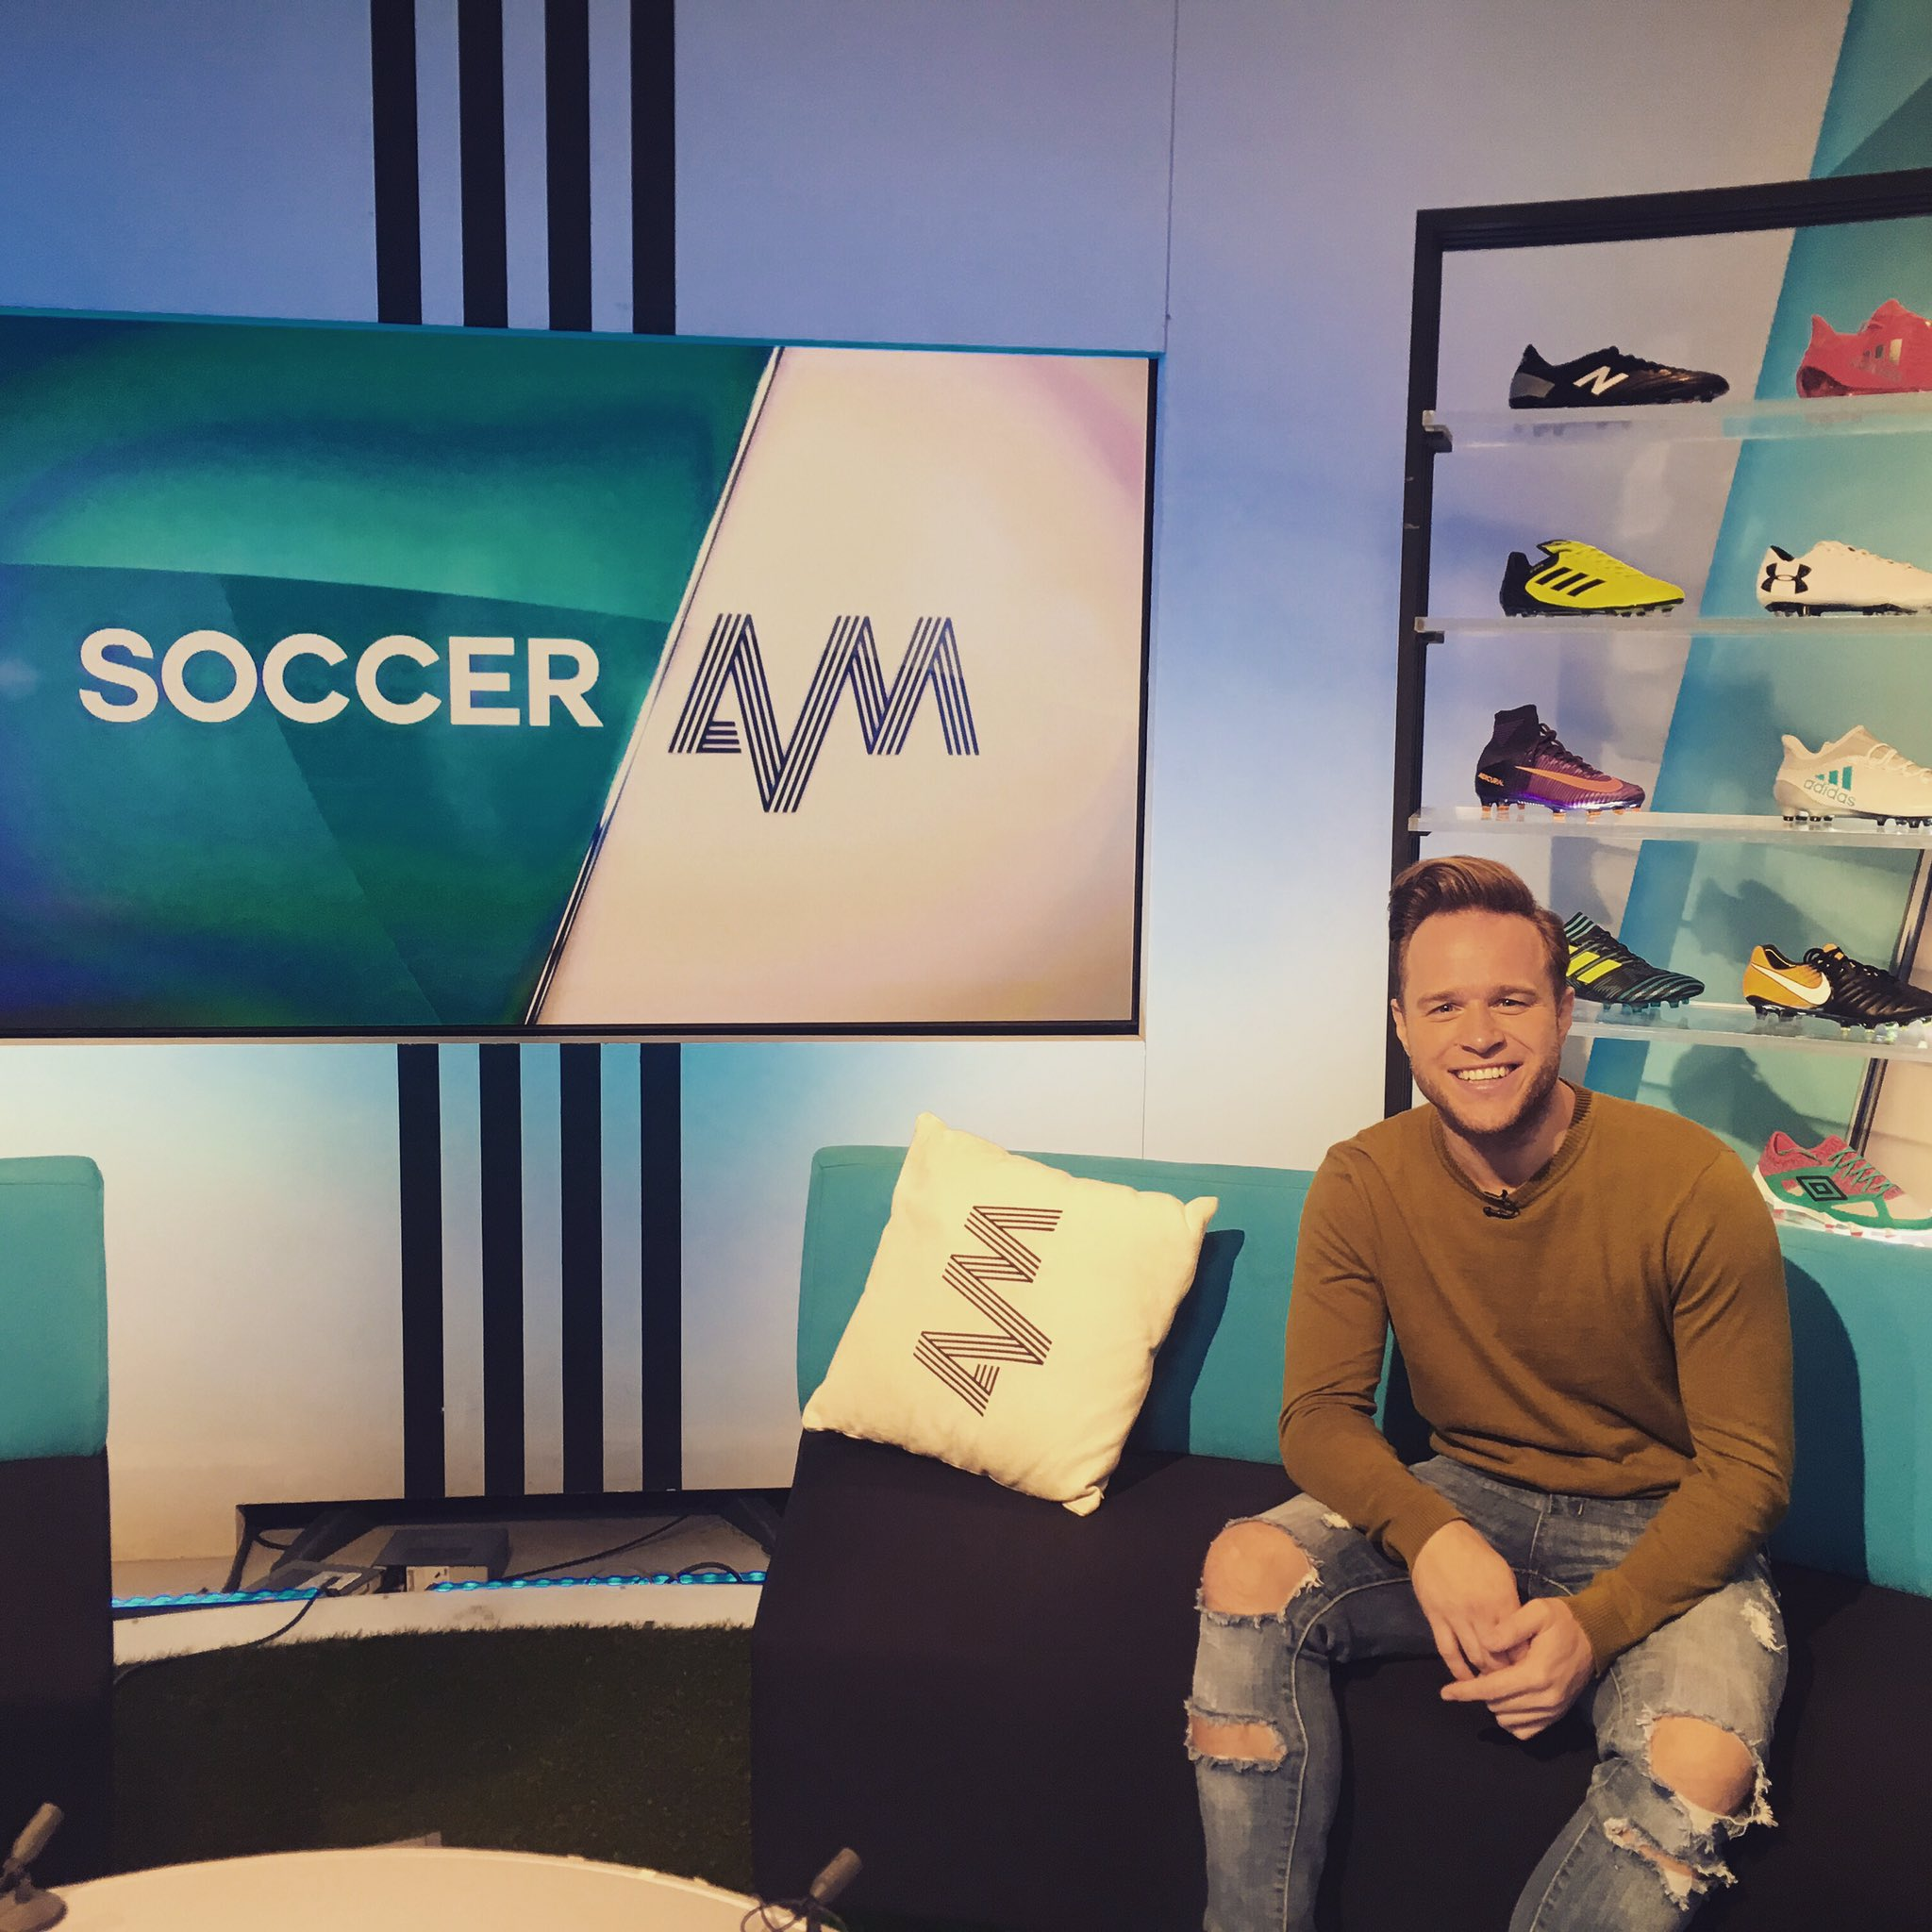 On @SoccerAM right now talking all things football, especially #game4grenfell and #bradleylowery games coming up! ���� https://t.co/oQNDwfclWi